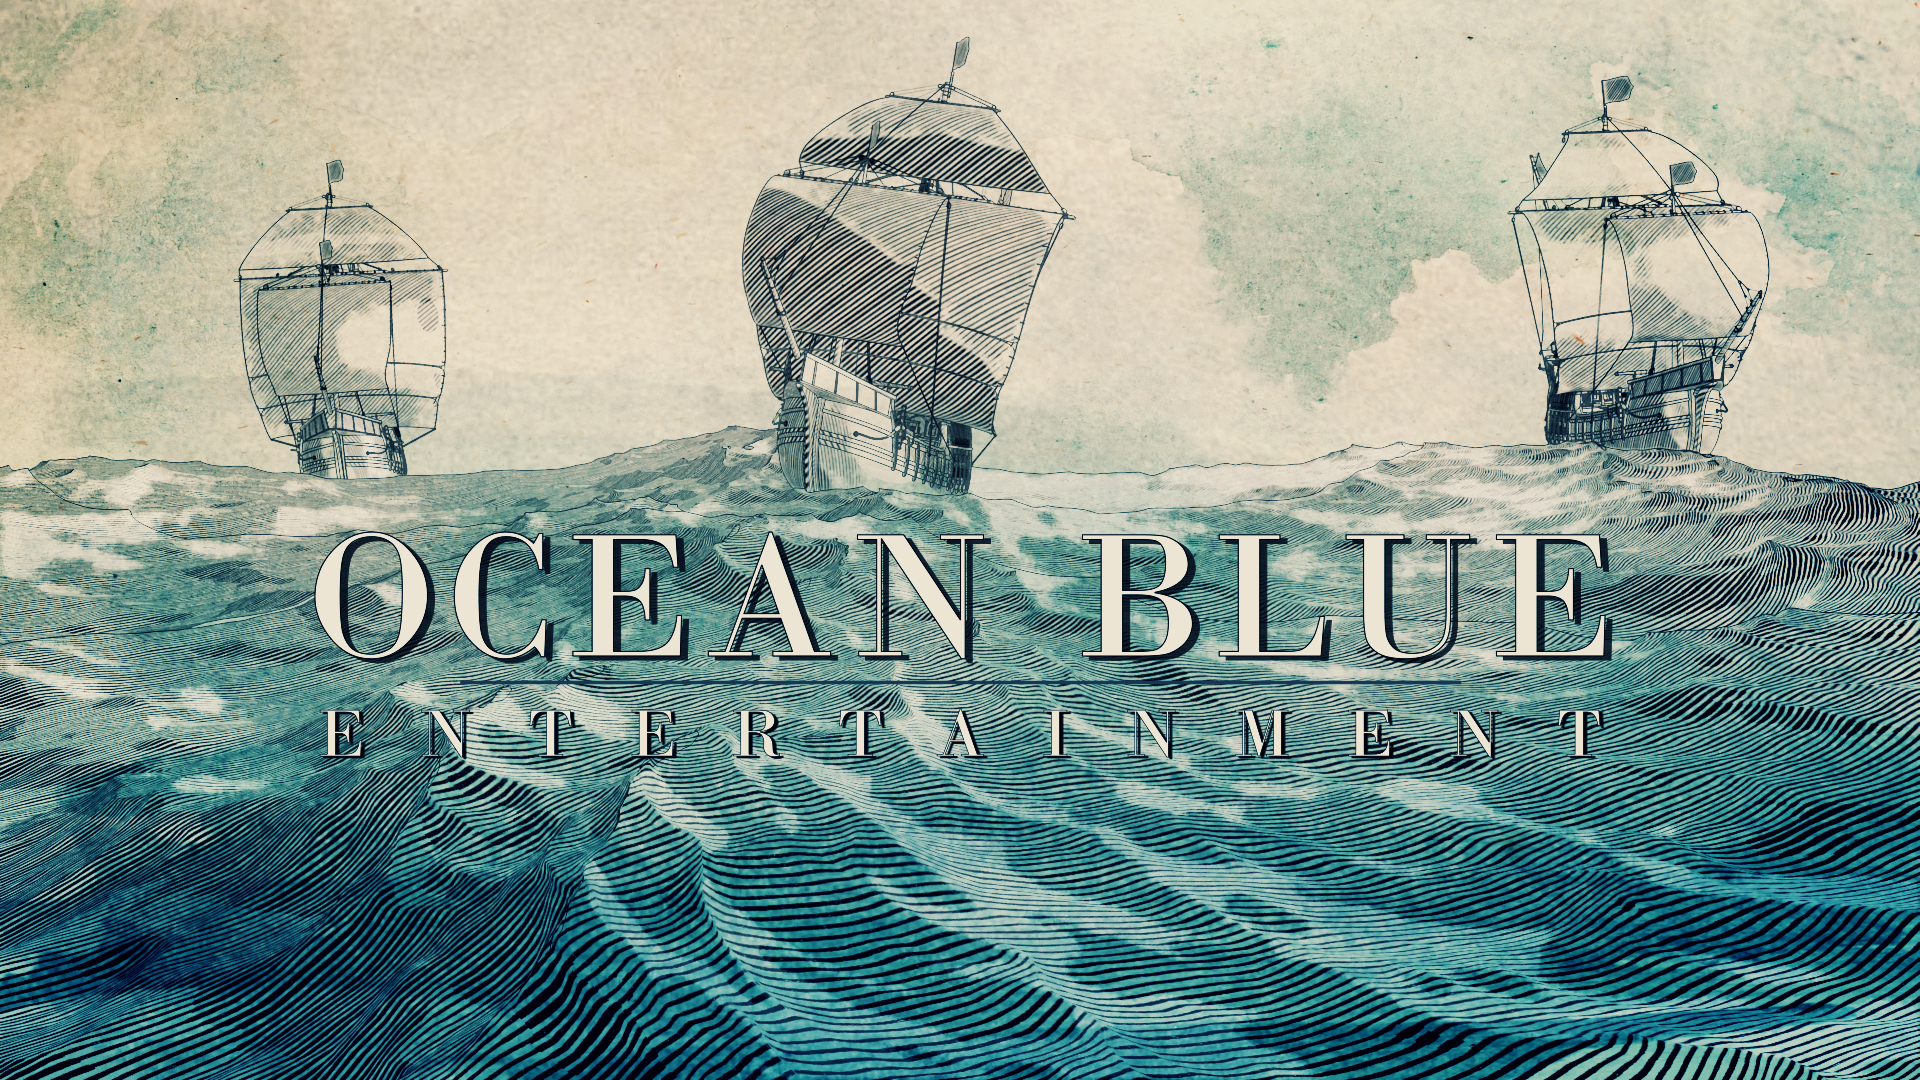 OCEAN_BLUE_BOARDS_AV_03.04.2015_REV_00009